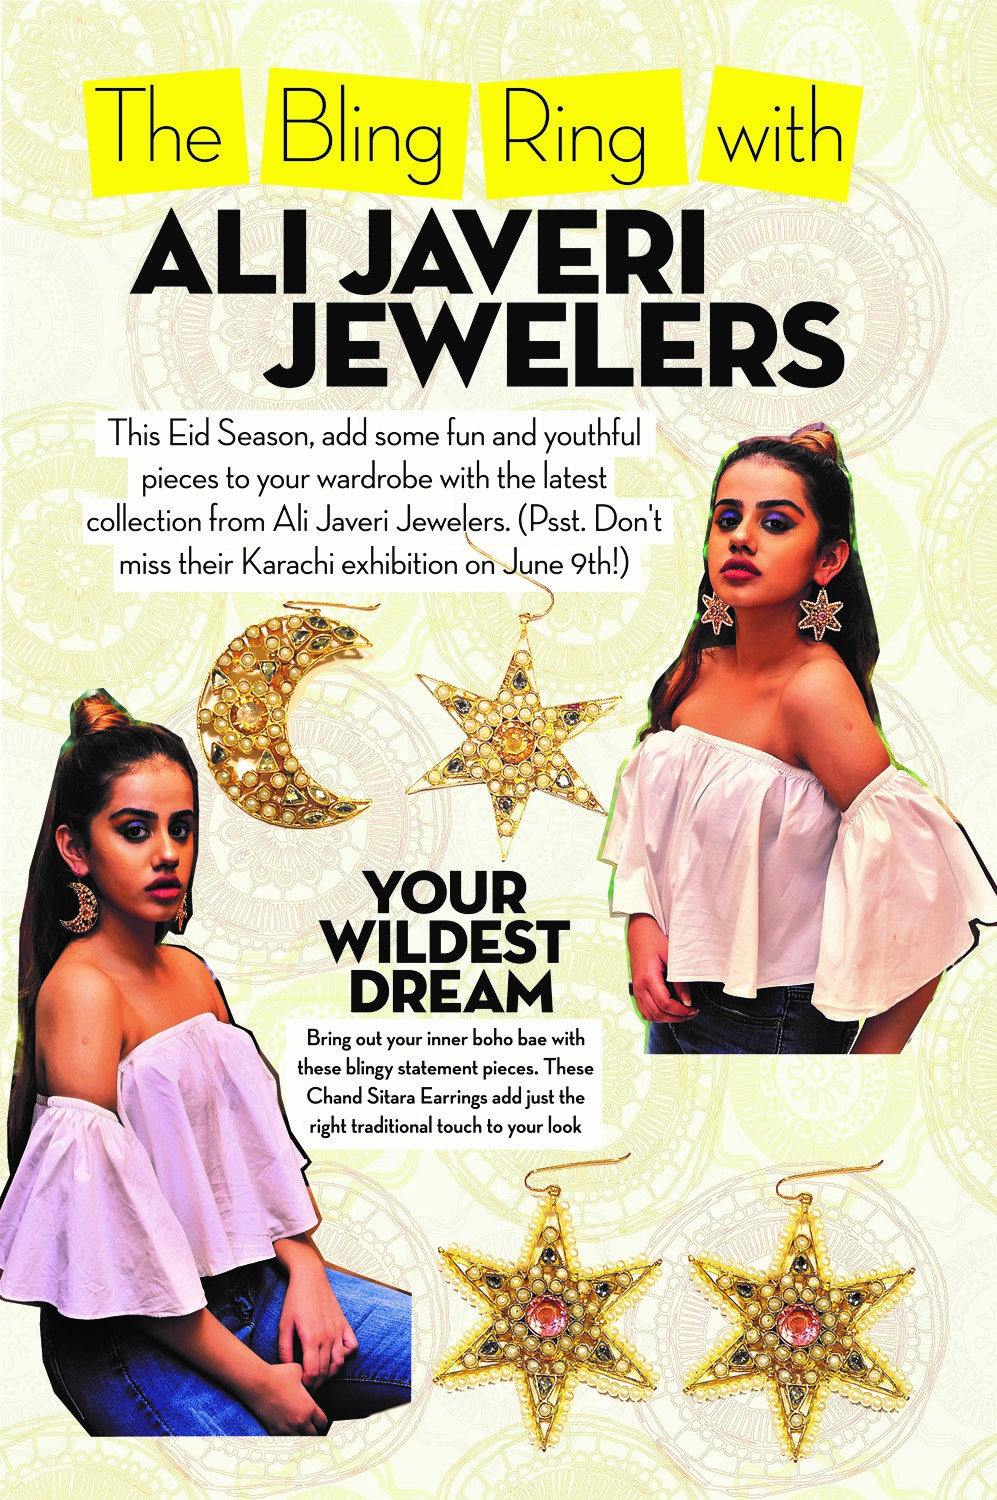 The Bling Ring with Ali Javeri Jewelers June 3-843 copy - Copy (2)